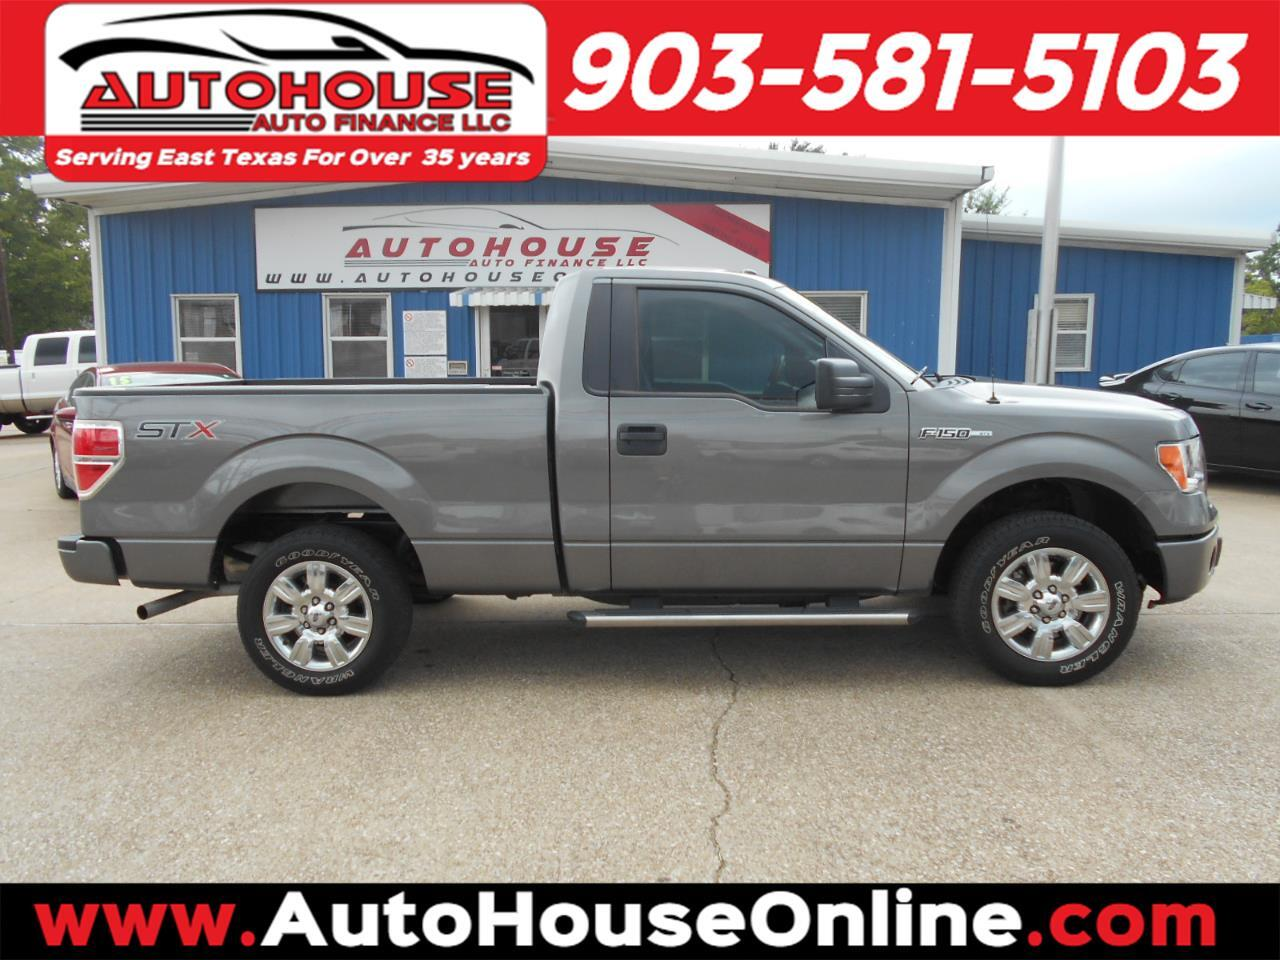 Ford F-150 STX 6.5-ft. Bed 2WD 2014